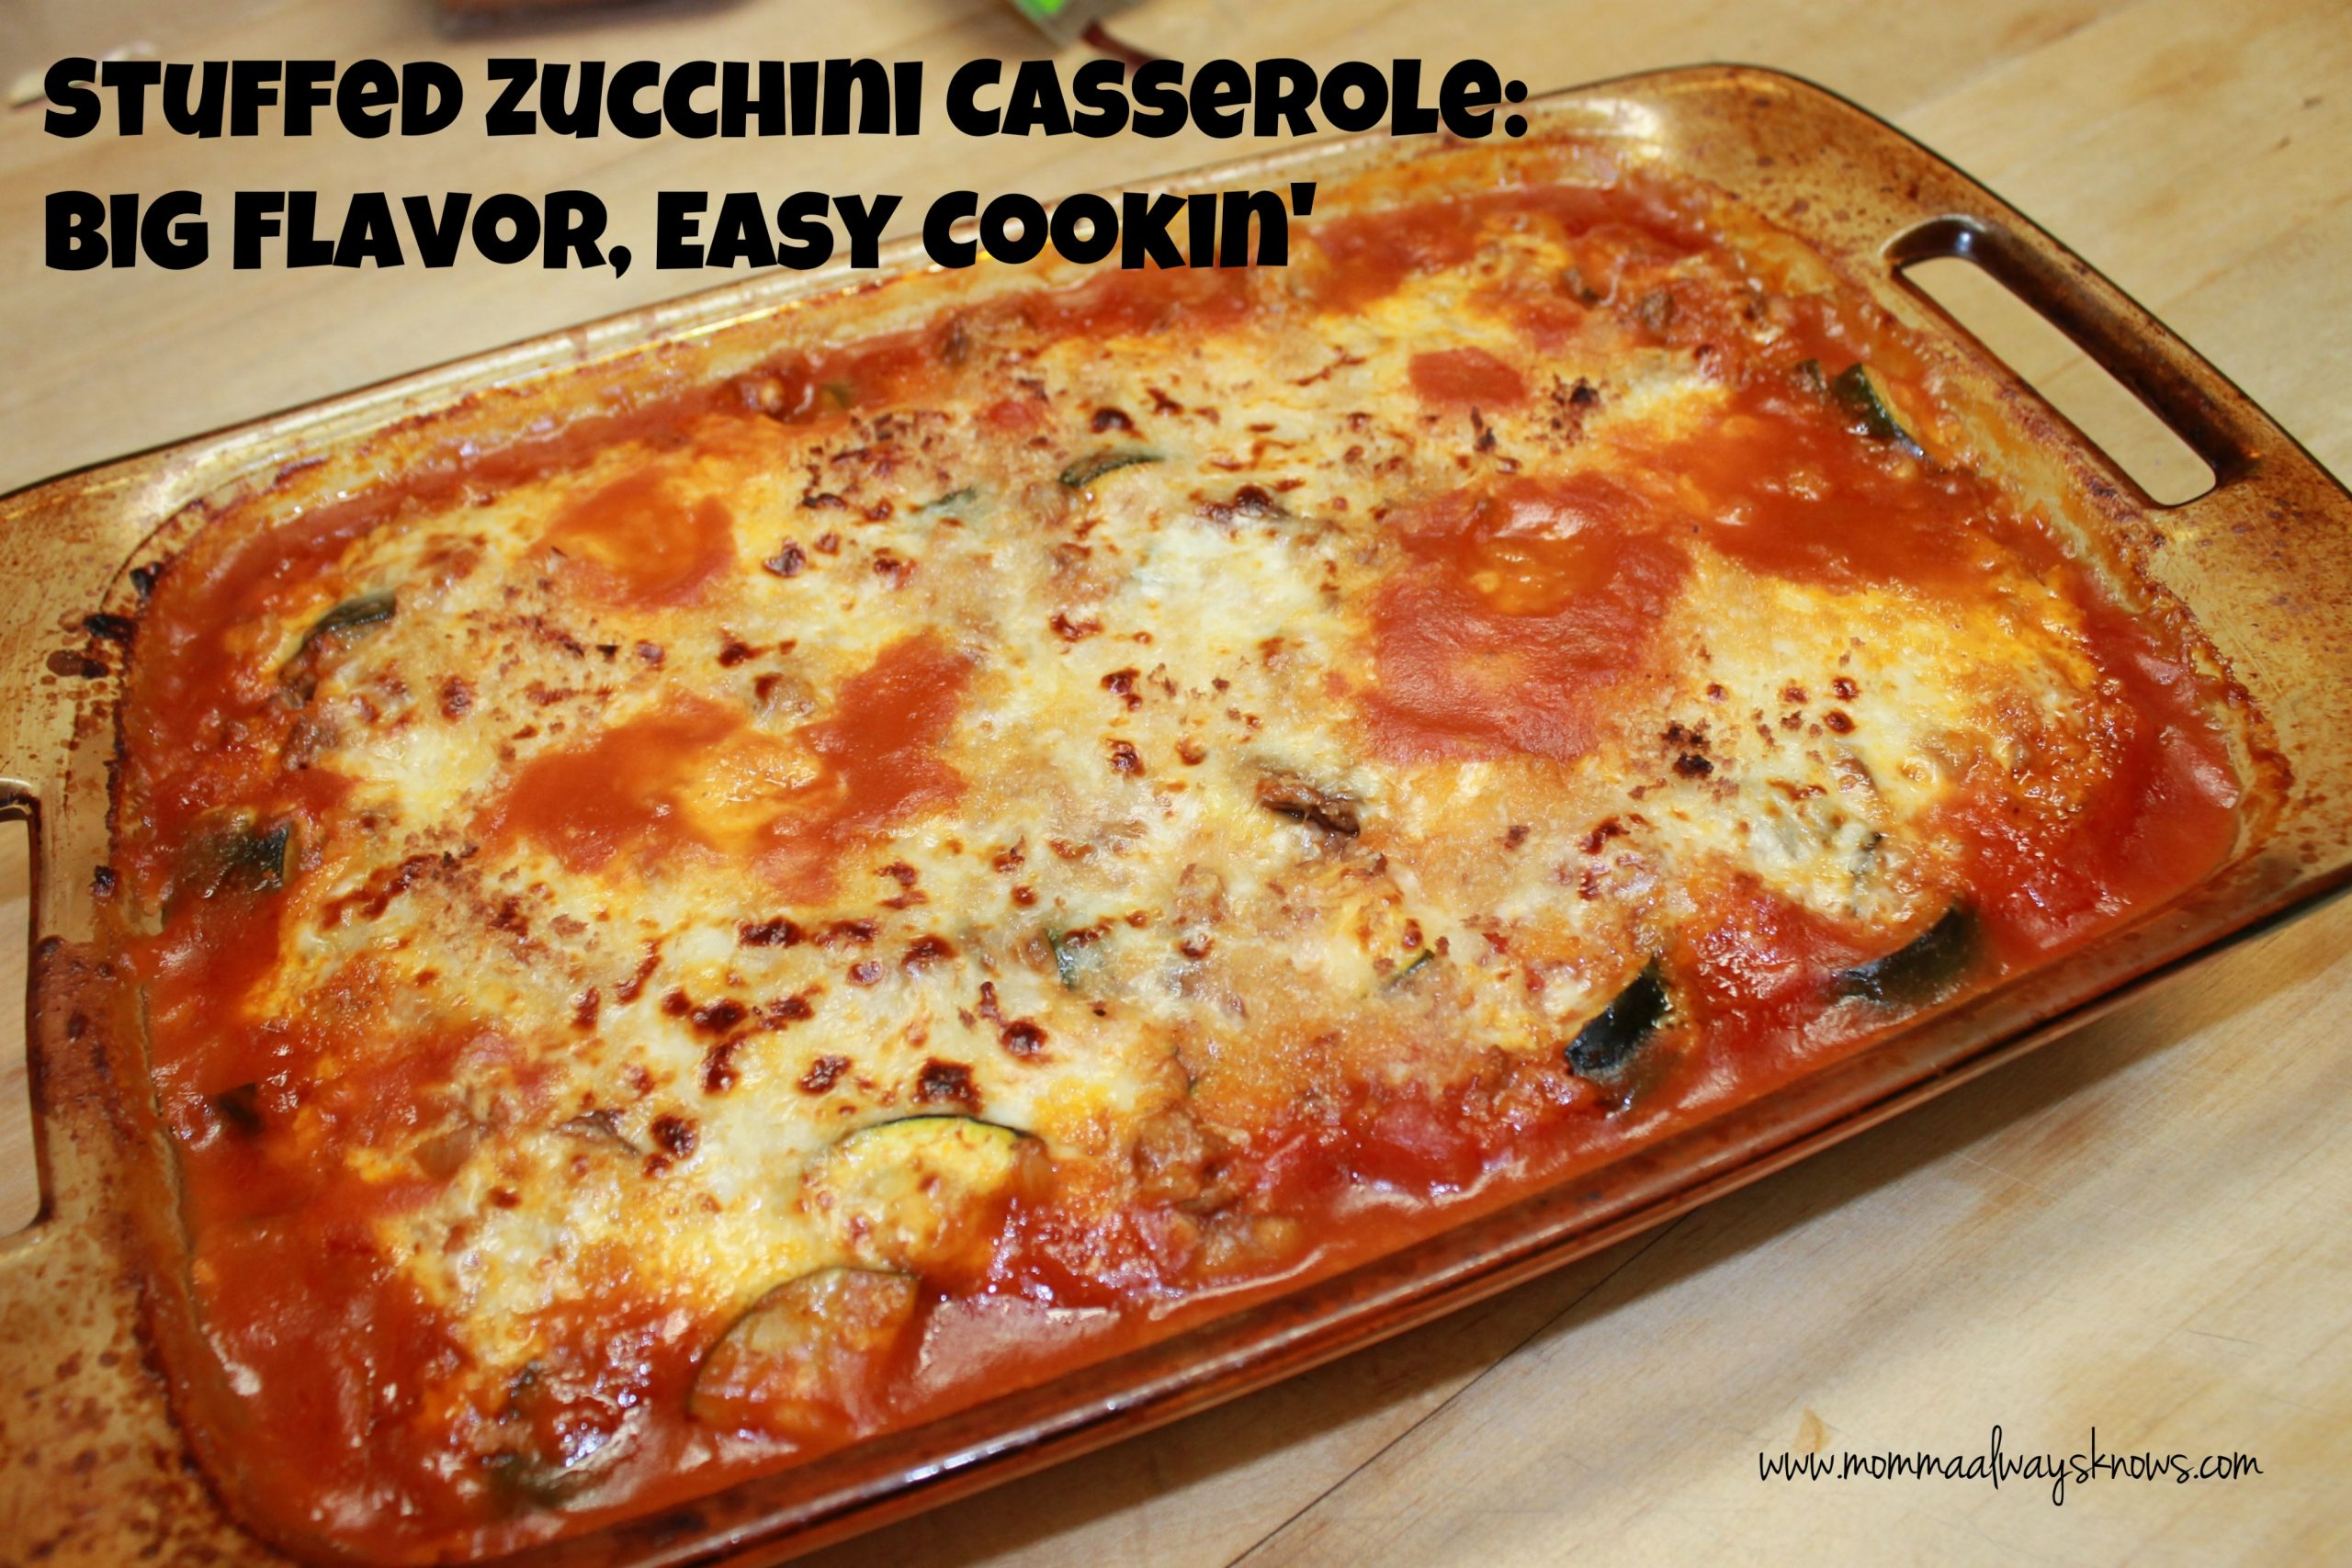 Stuffed Zucchini Casserole: Big Flavor, Easy Cookin ..